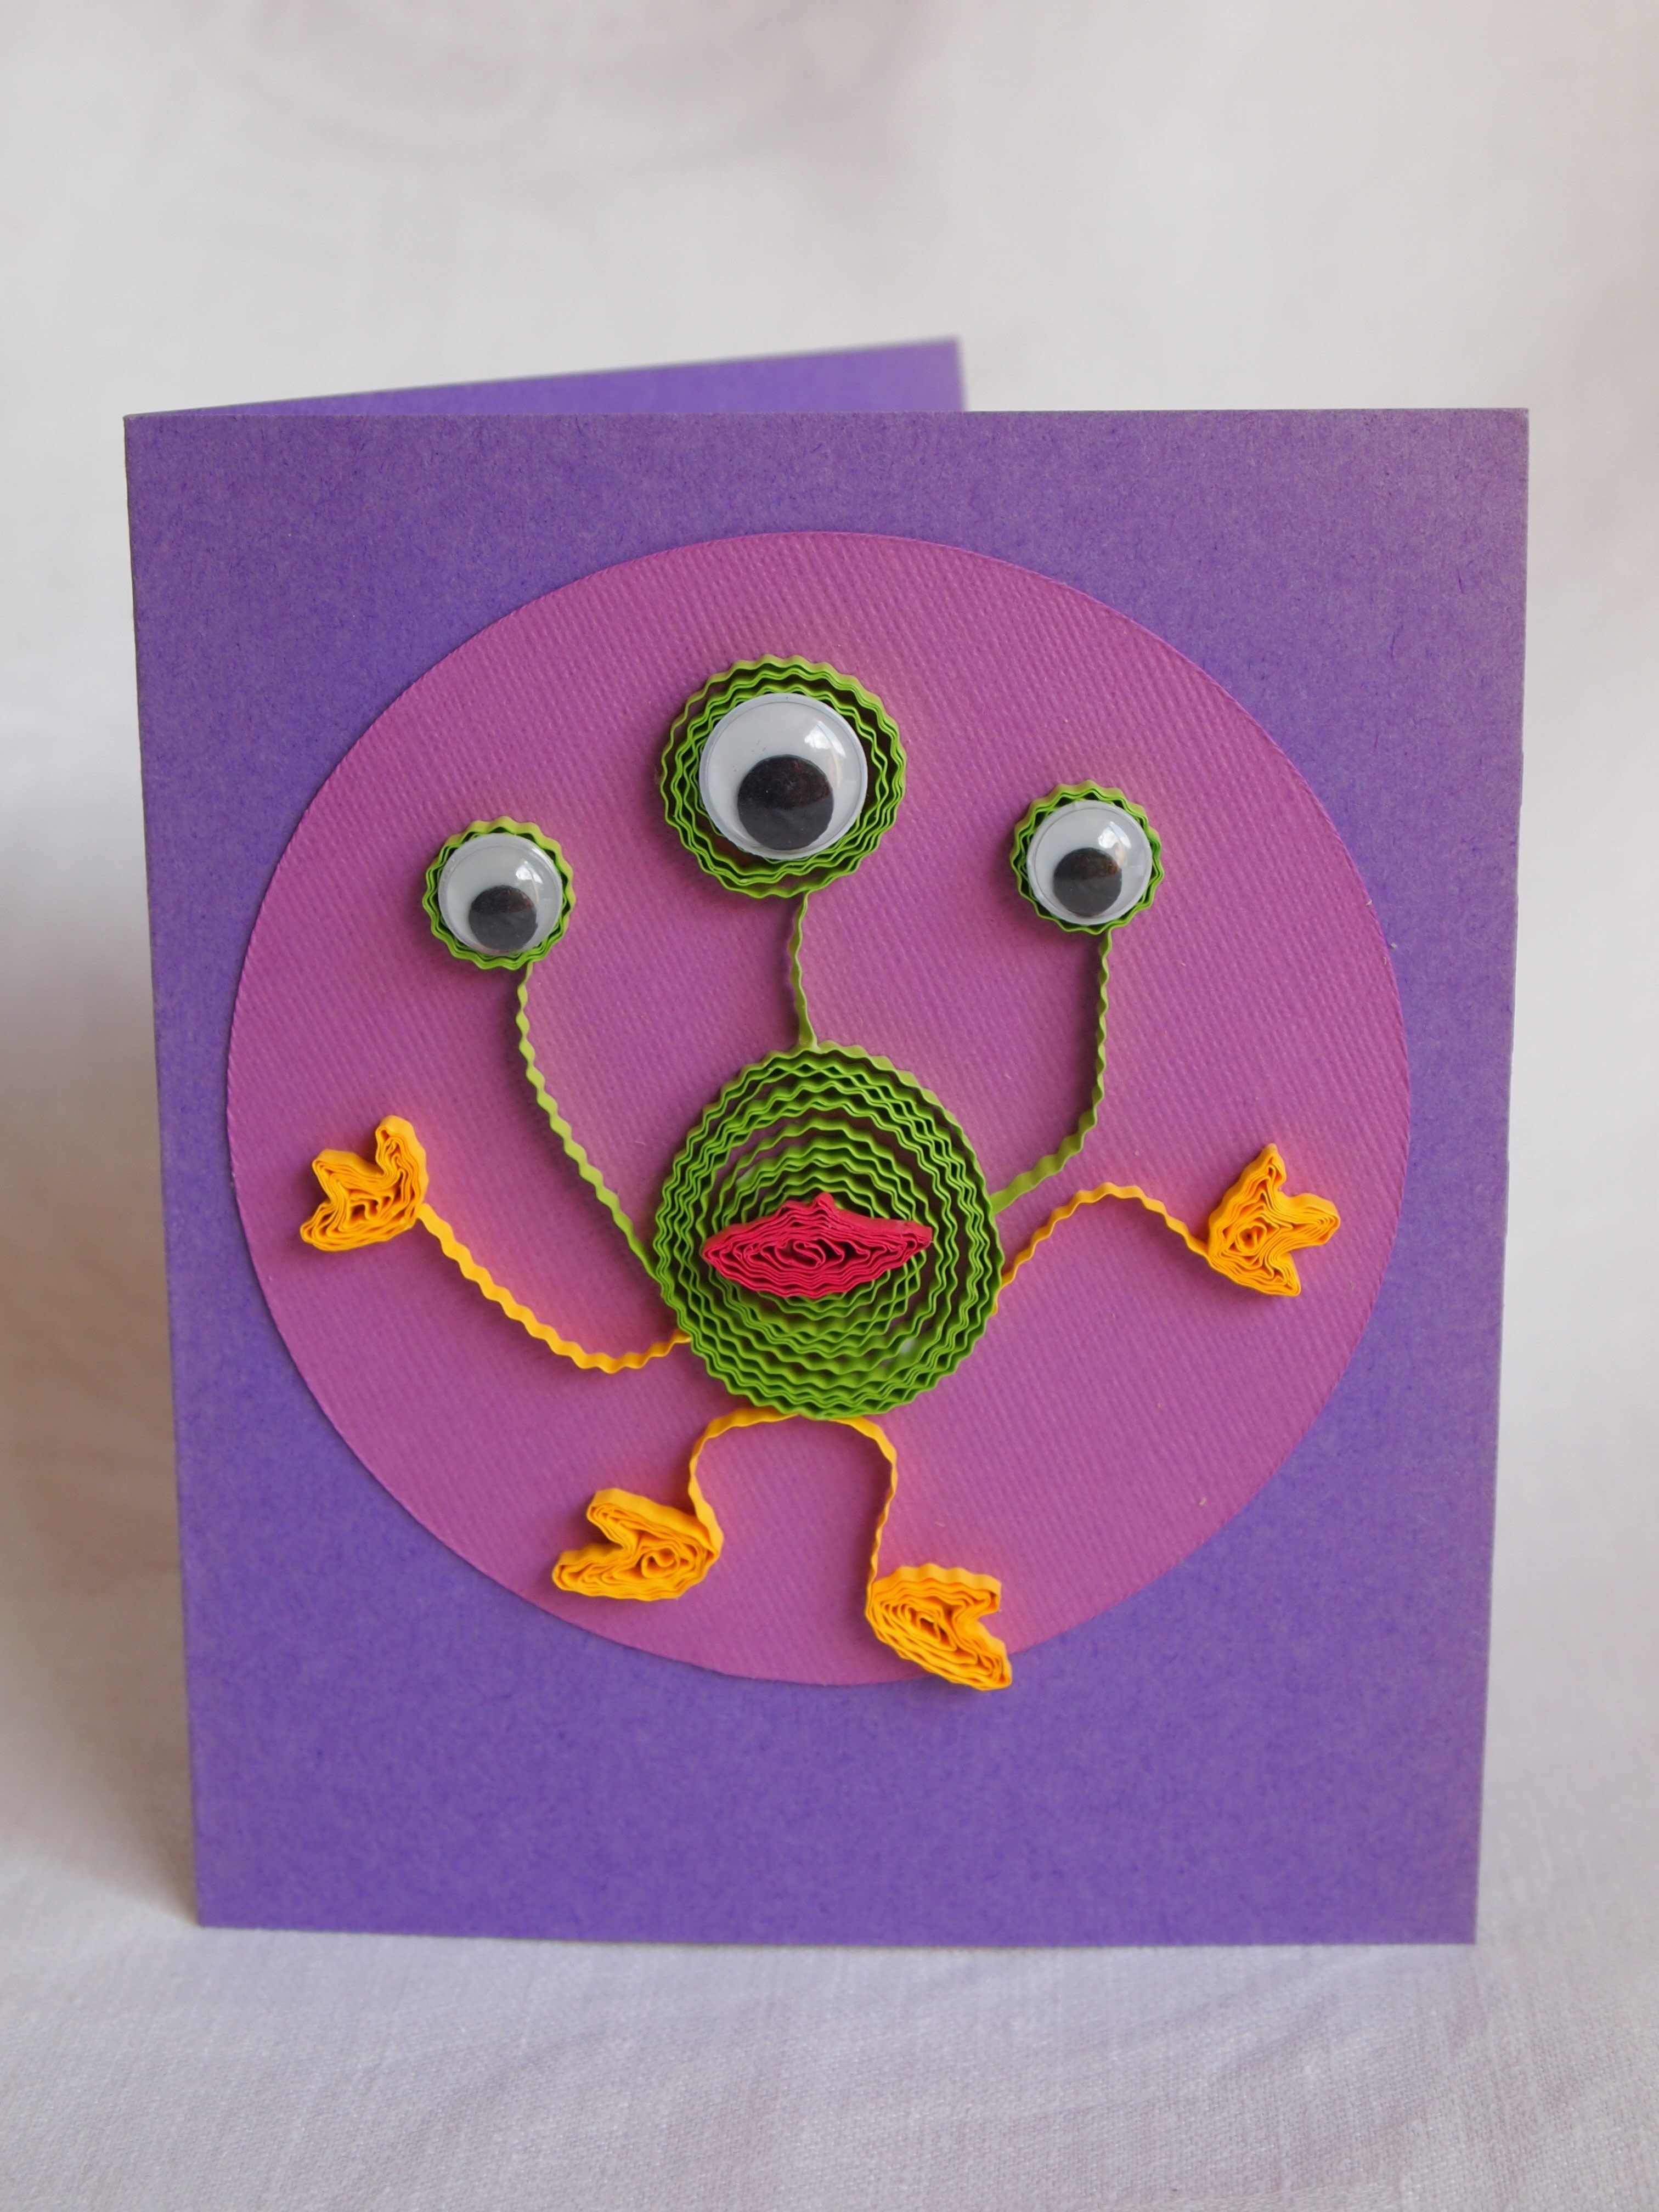 Magnificent Paper Quilled Alien How To Make A Quilled Greetings Card Personalised Birthday Cards Cominlily Jamesorg